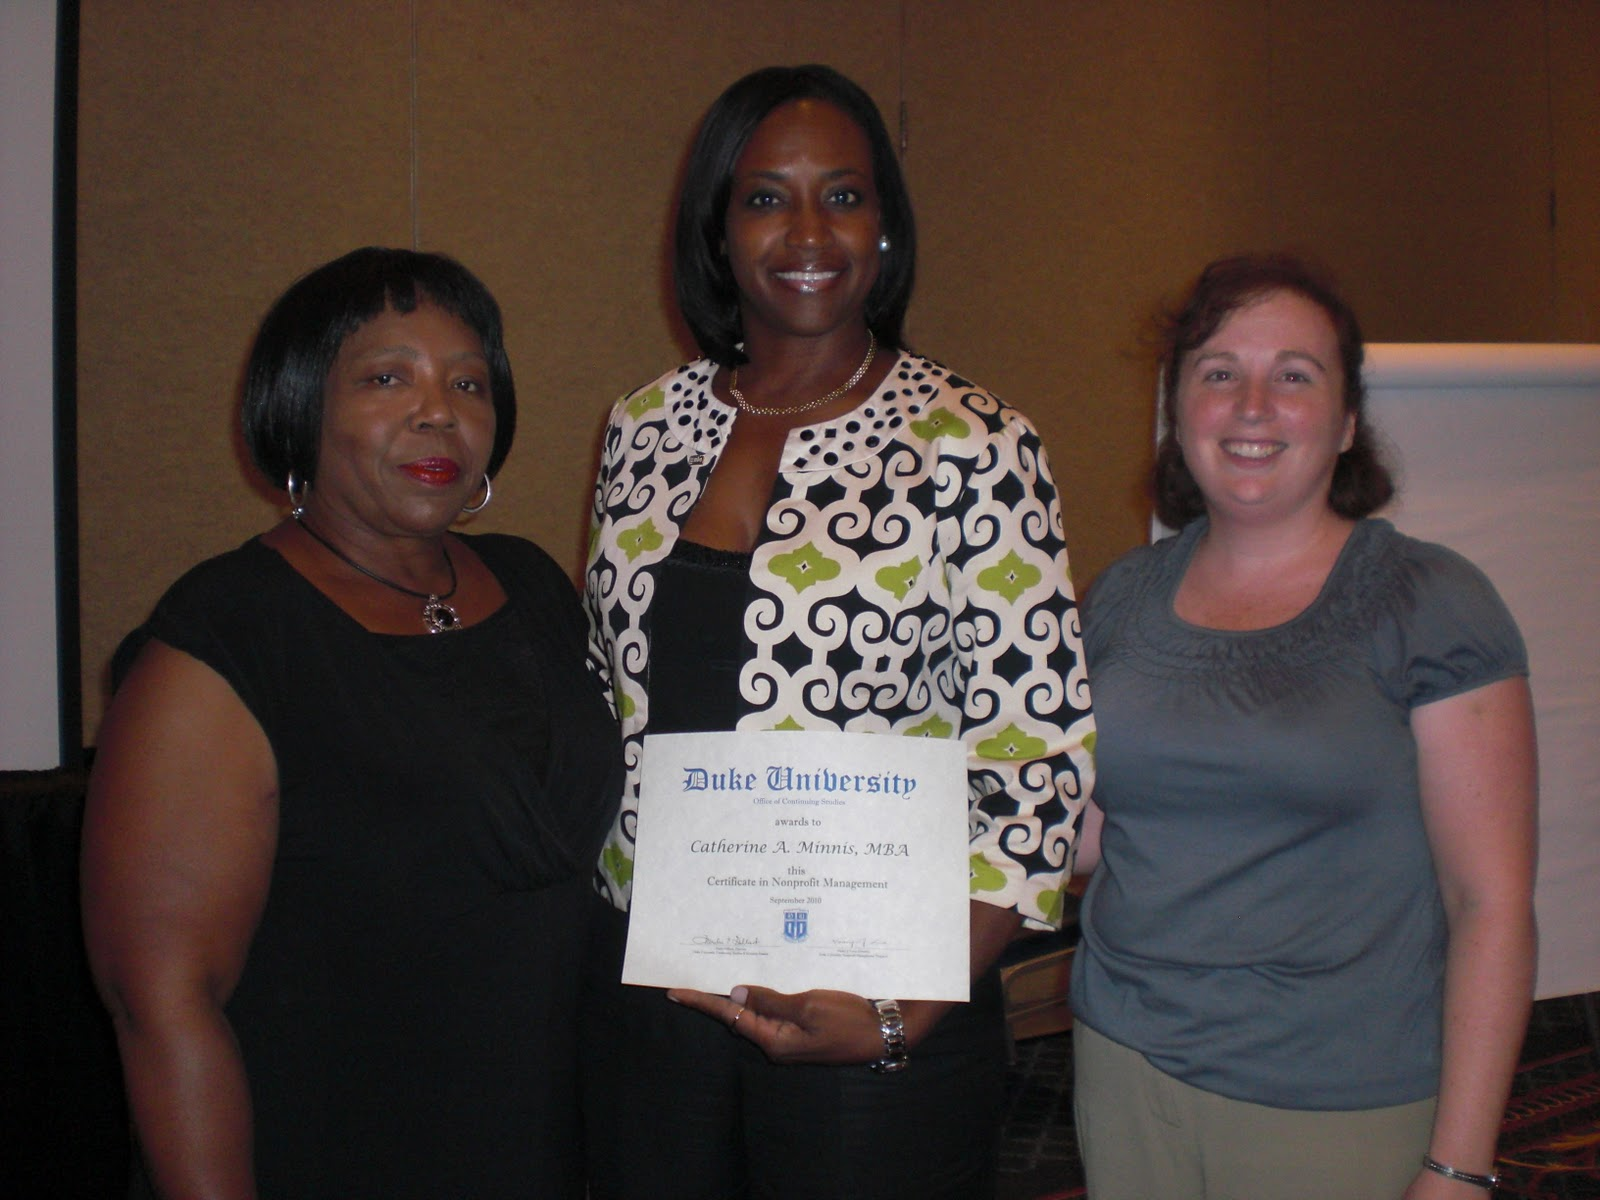 The Minnis Chronicle: Duke Certificate Awarded in Nonprofit Management